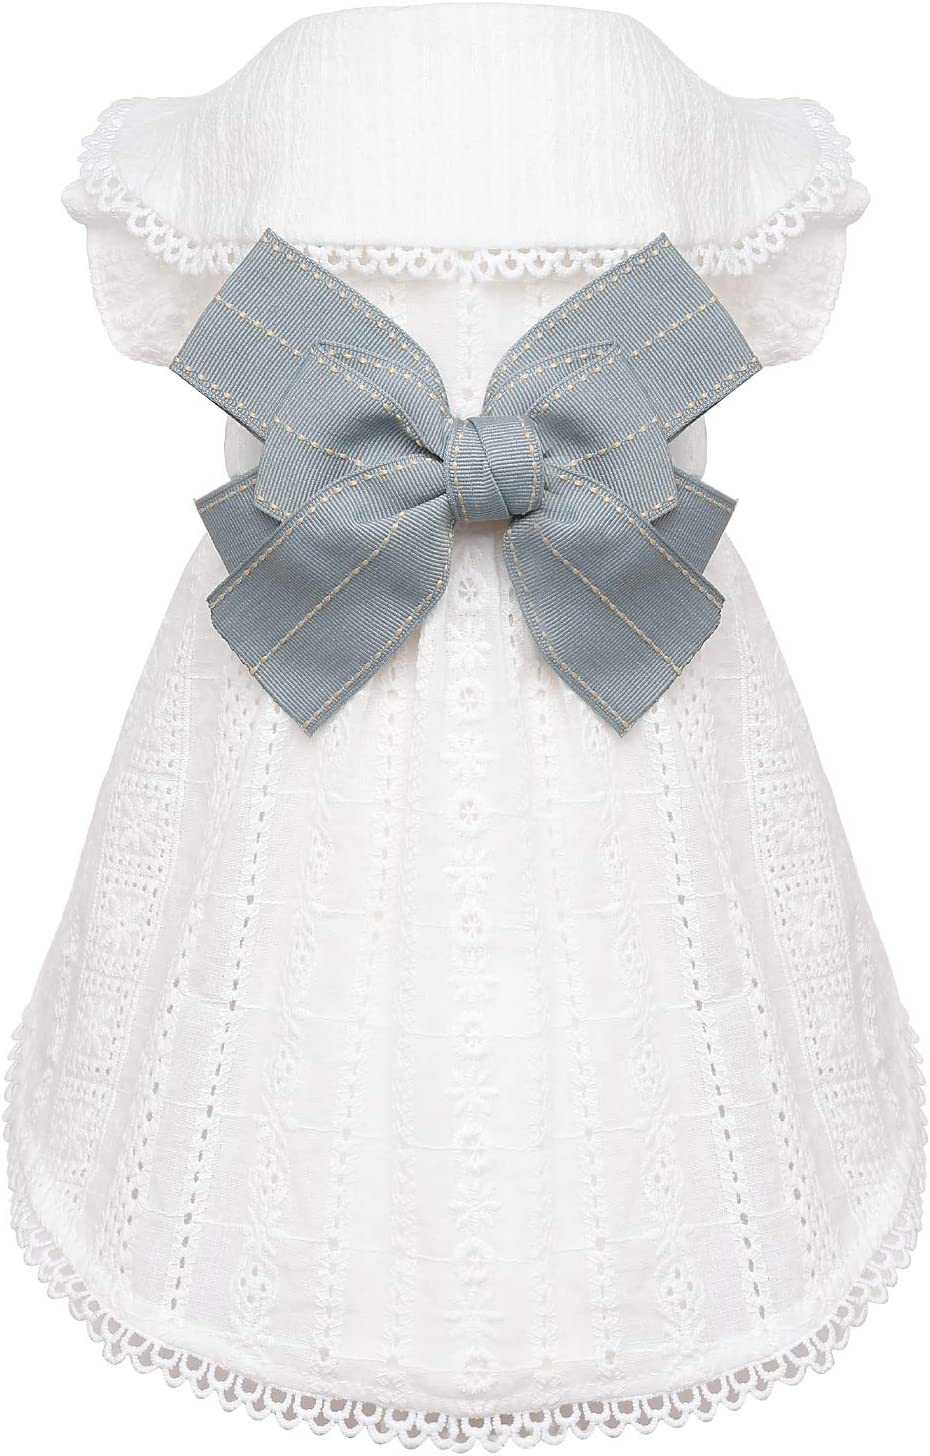 Pet Cotton Embroidered Back Bowknot Hollow Dresses D Tucson Mall for Out Cat Miami Mall